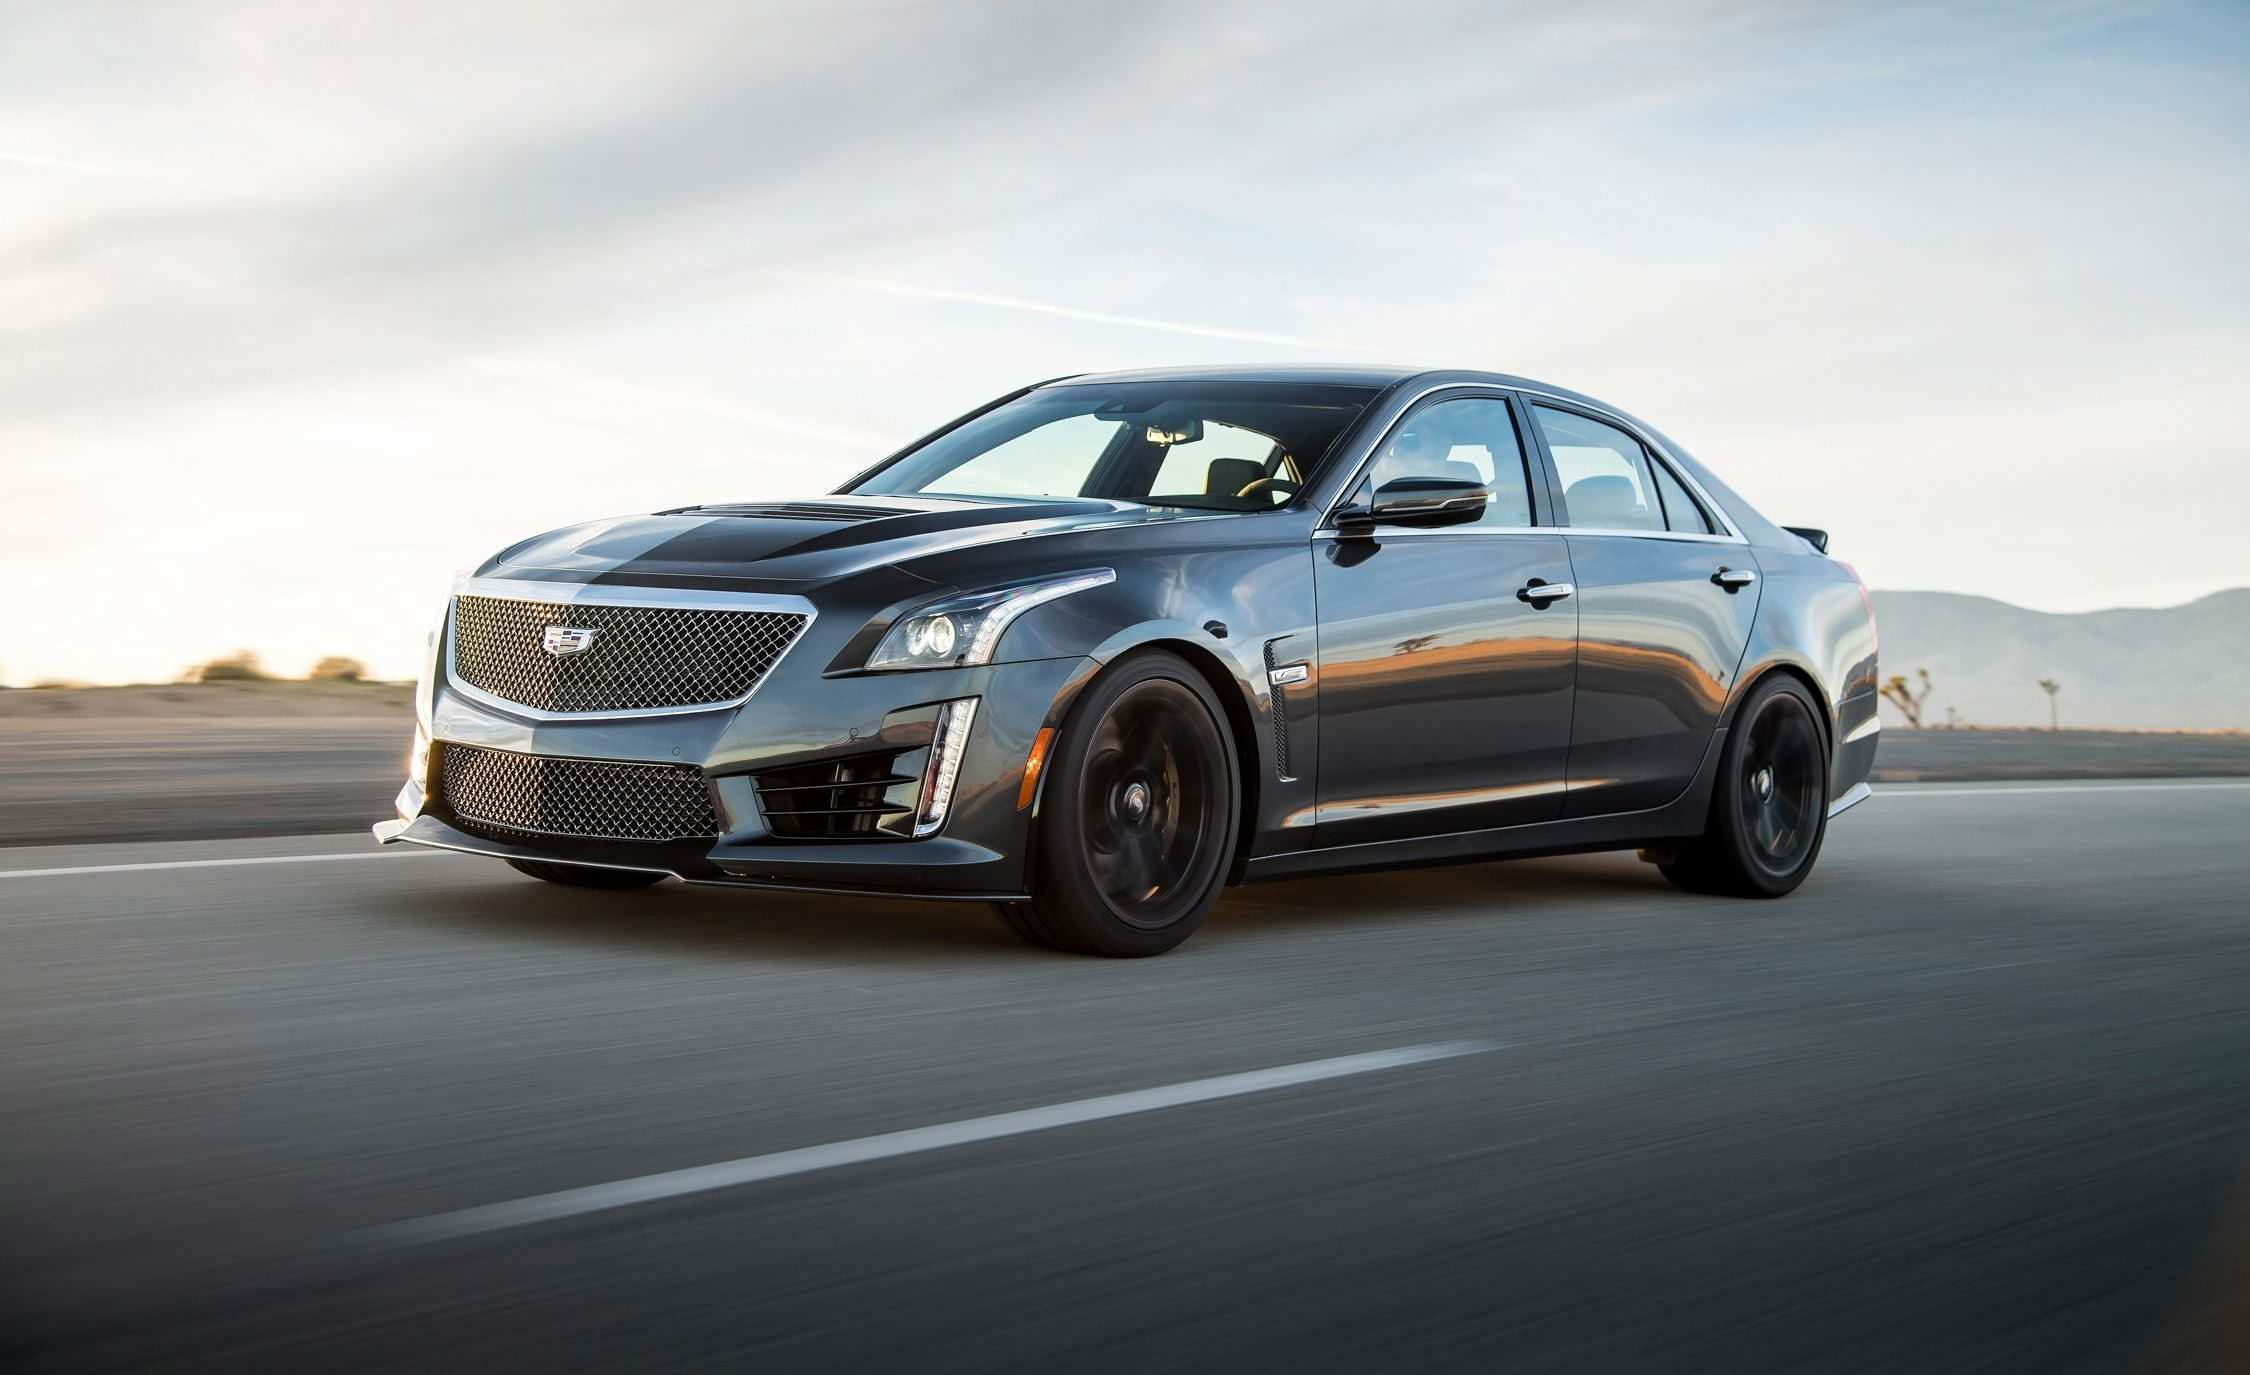 71 The Best 2020 Cadillac Cts V Spesification